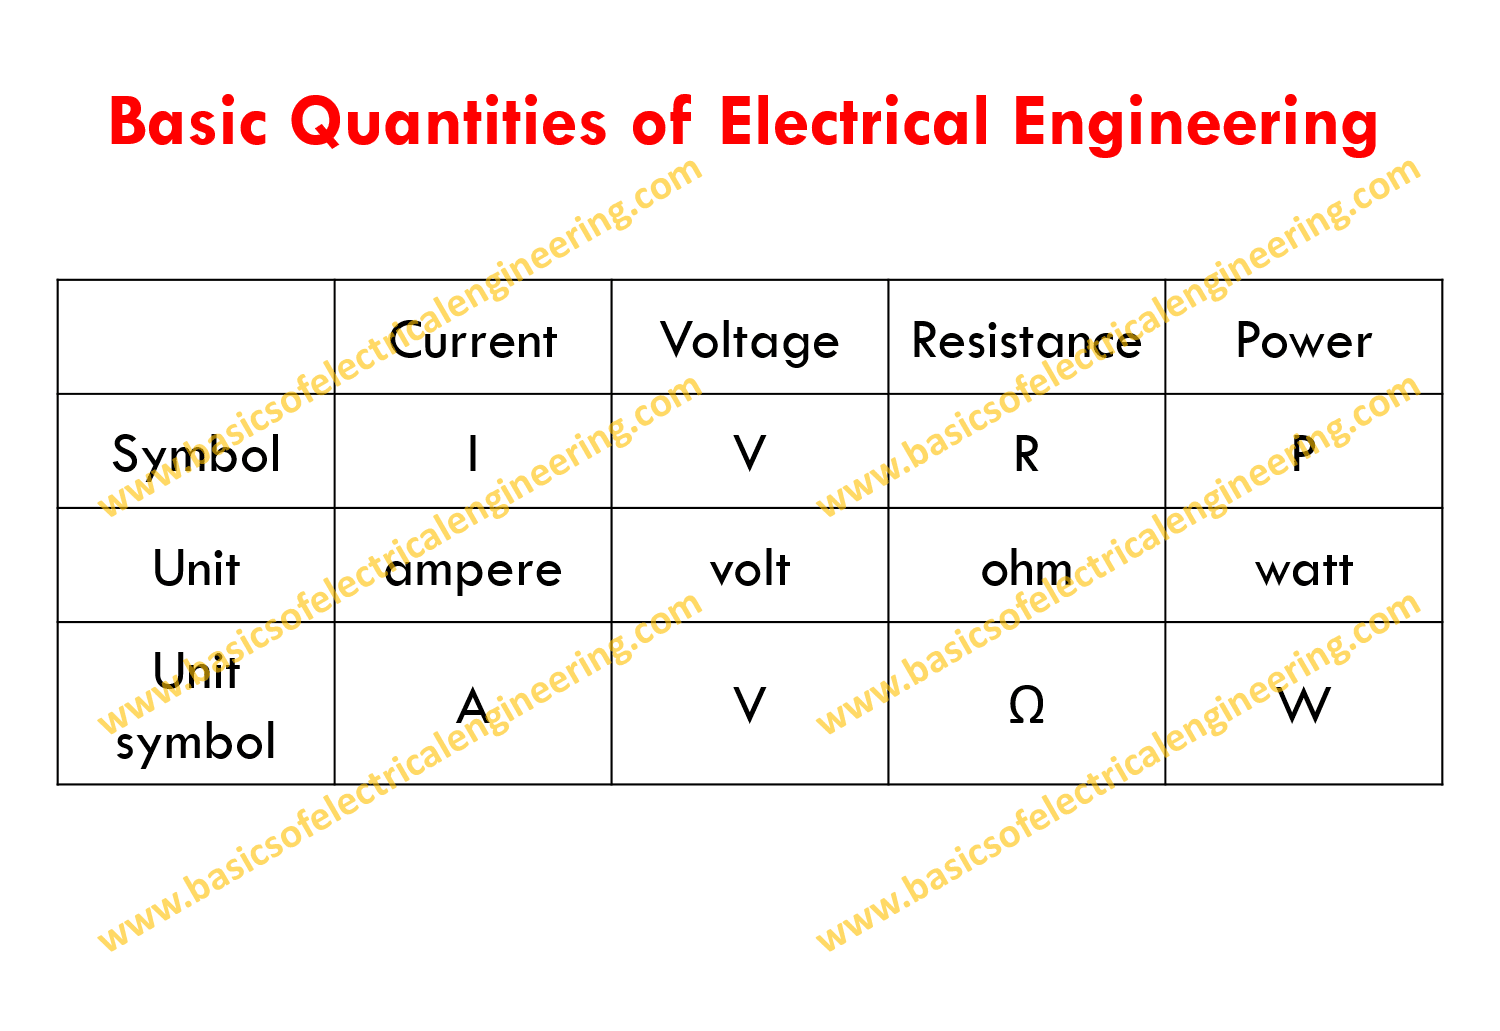 basic-quantities-of-electrical-engineering